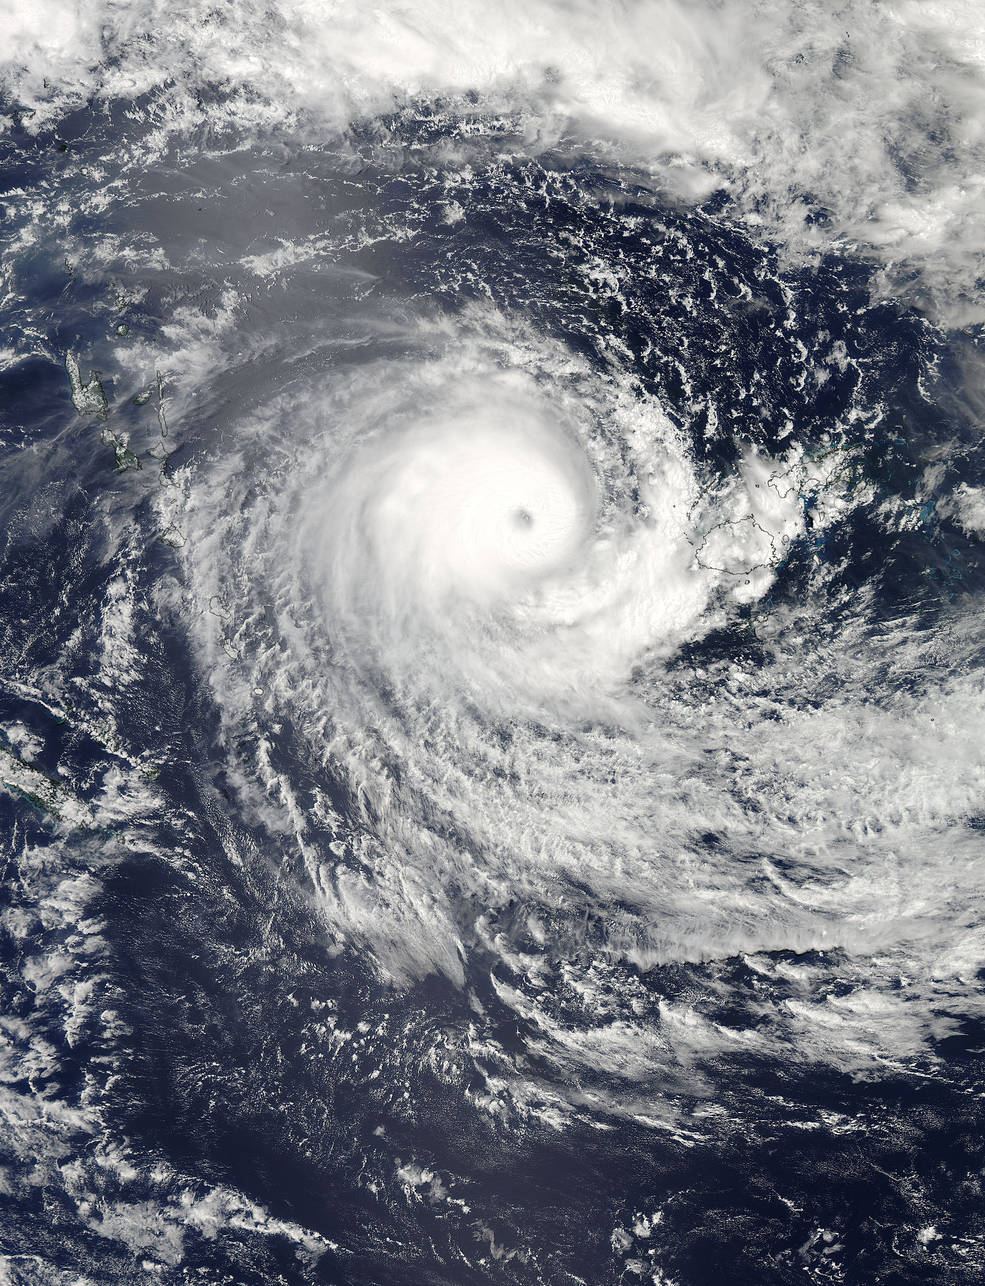 medium resolution of monster cyclone winston seen from space photos